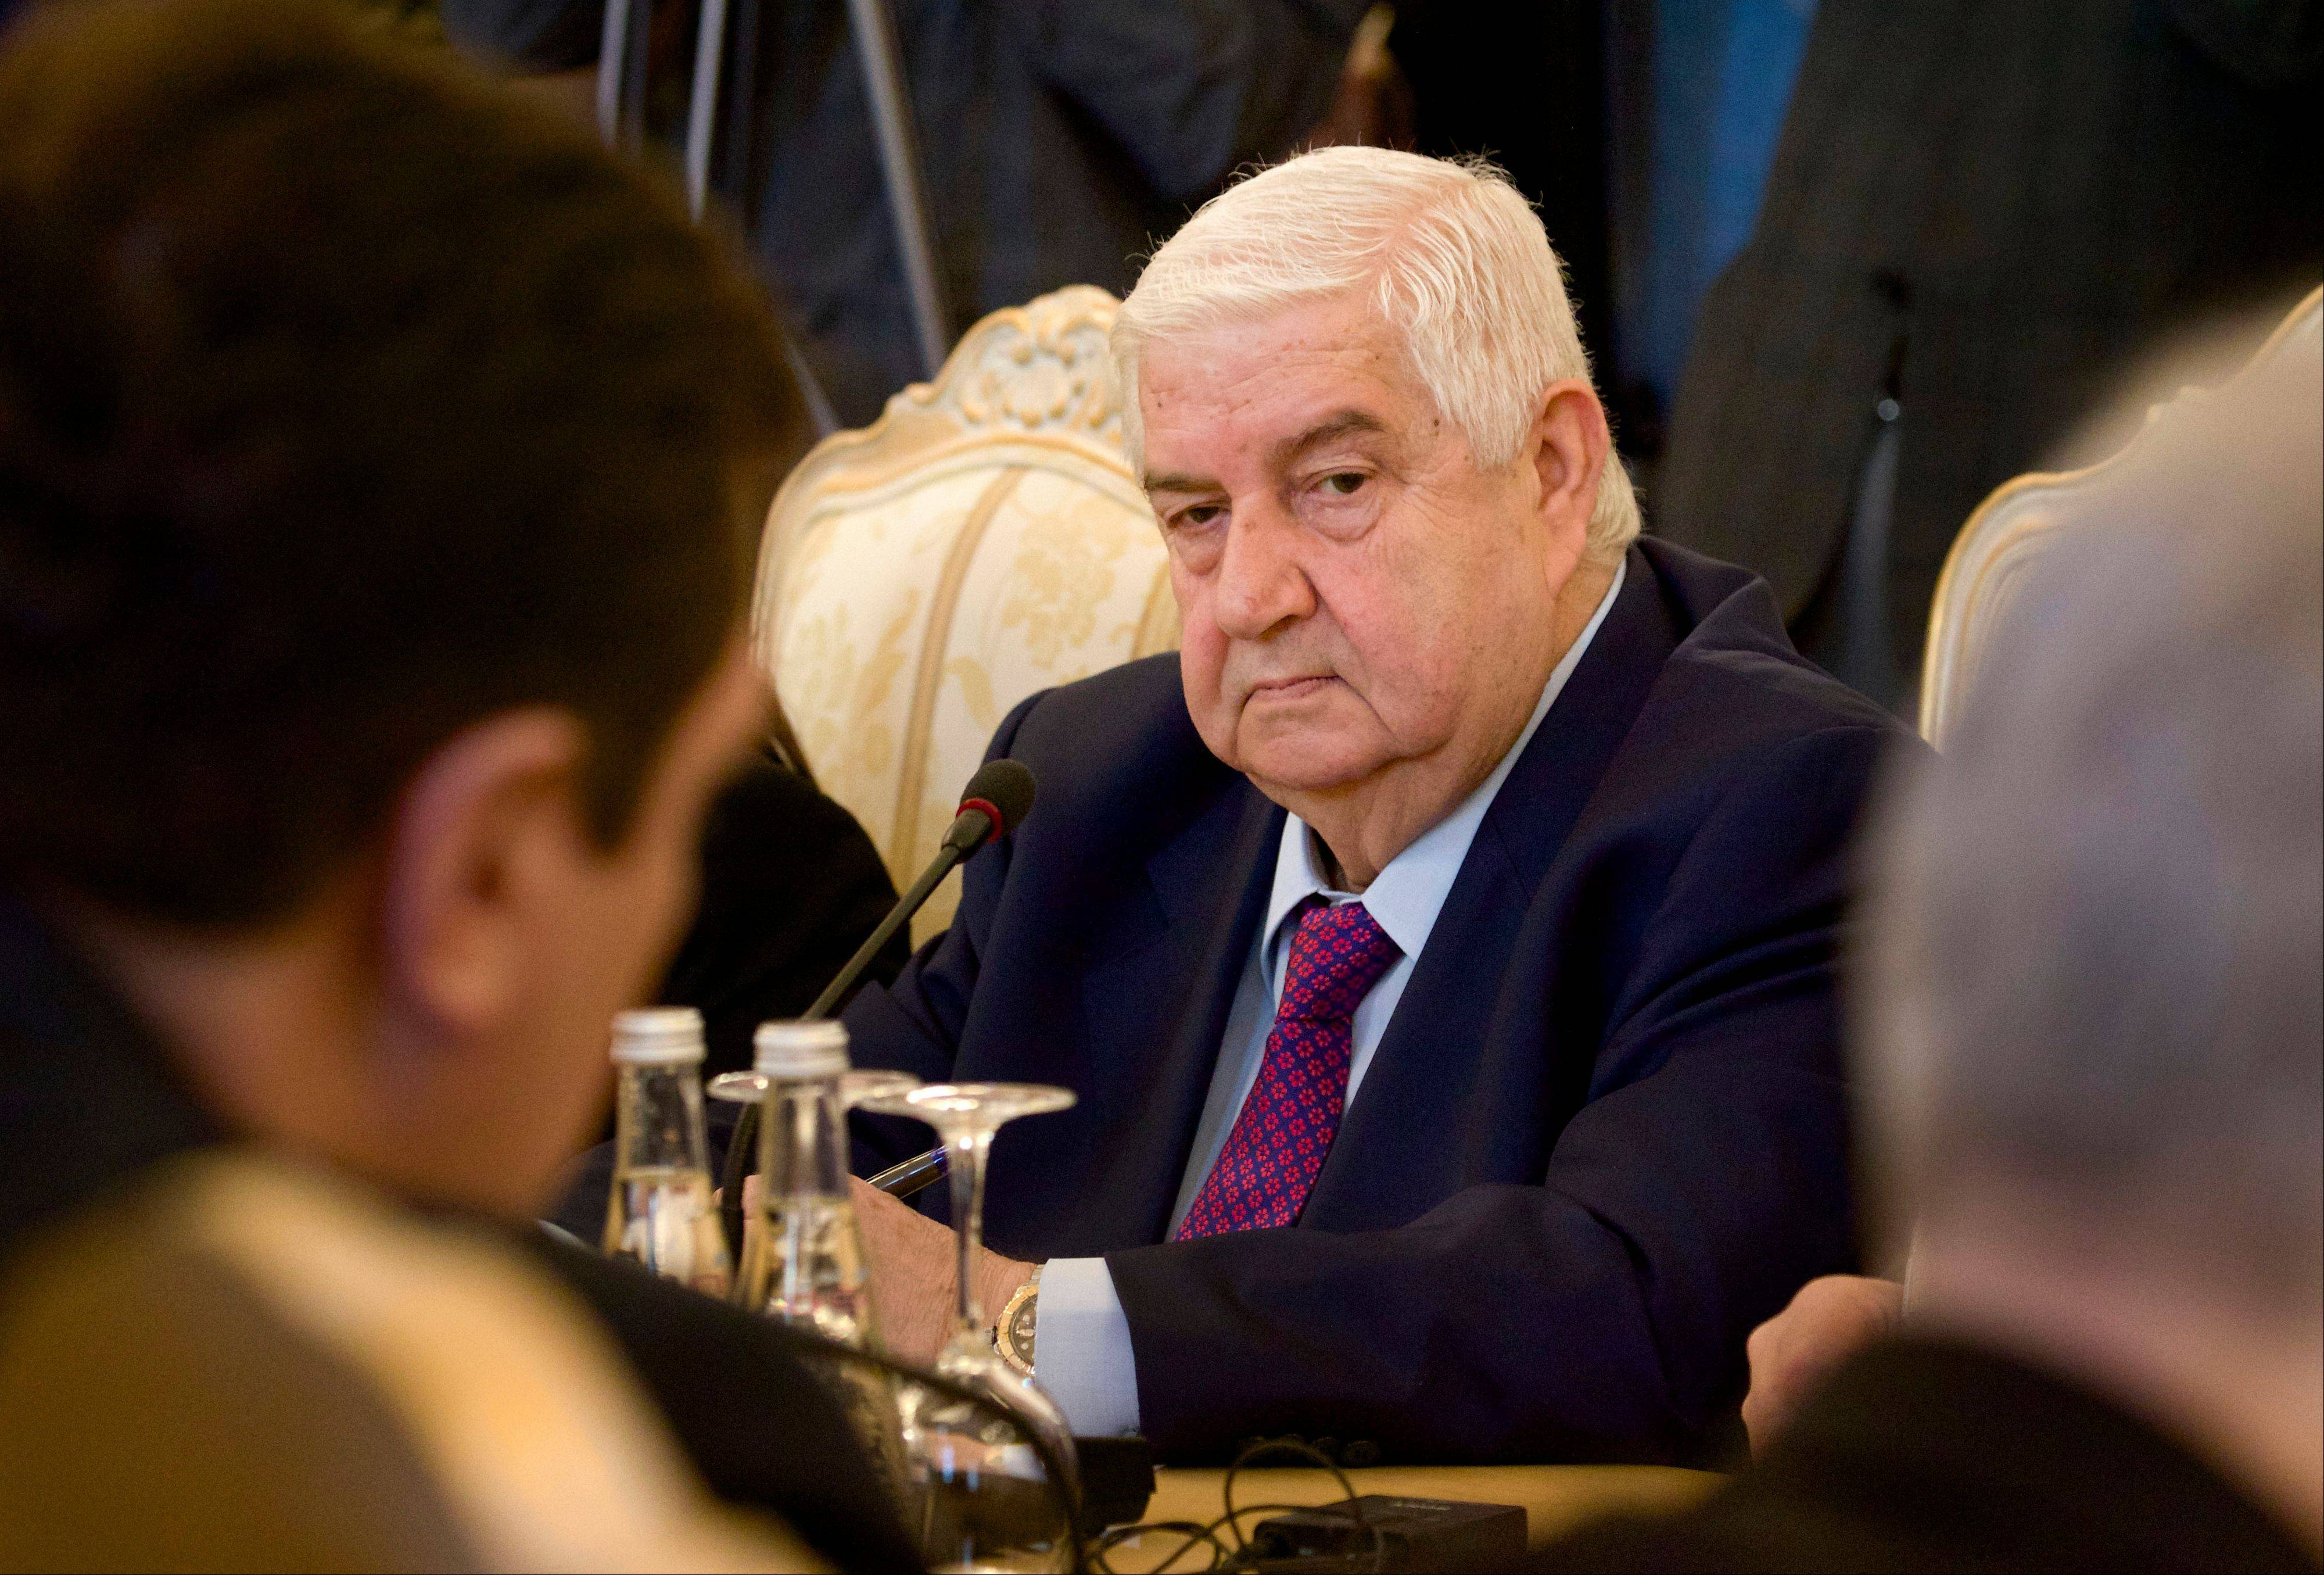 Syrian Foreign Minister Walid al-Moallem attends a meeting with his Russian counterpart Sergey Lavrov in Moscow on Monday.